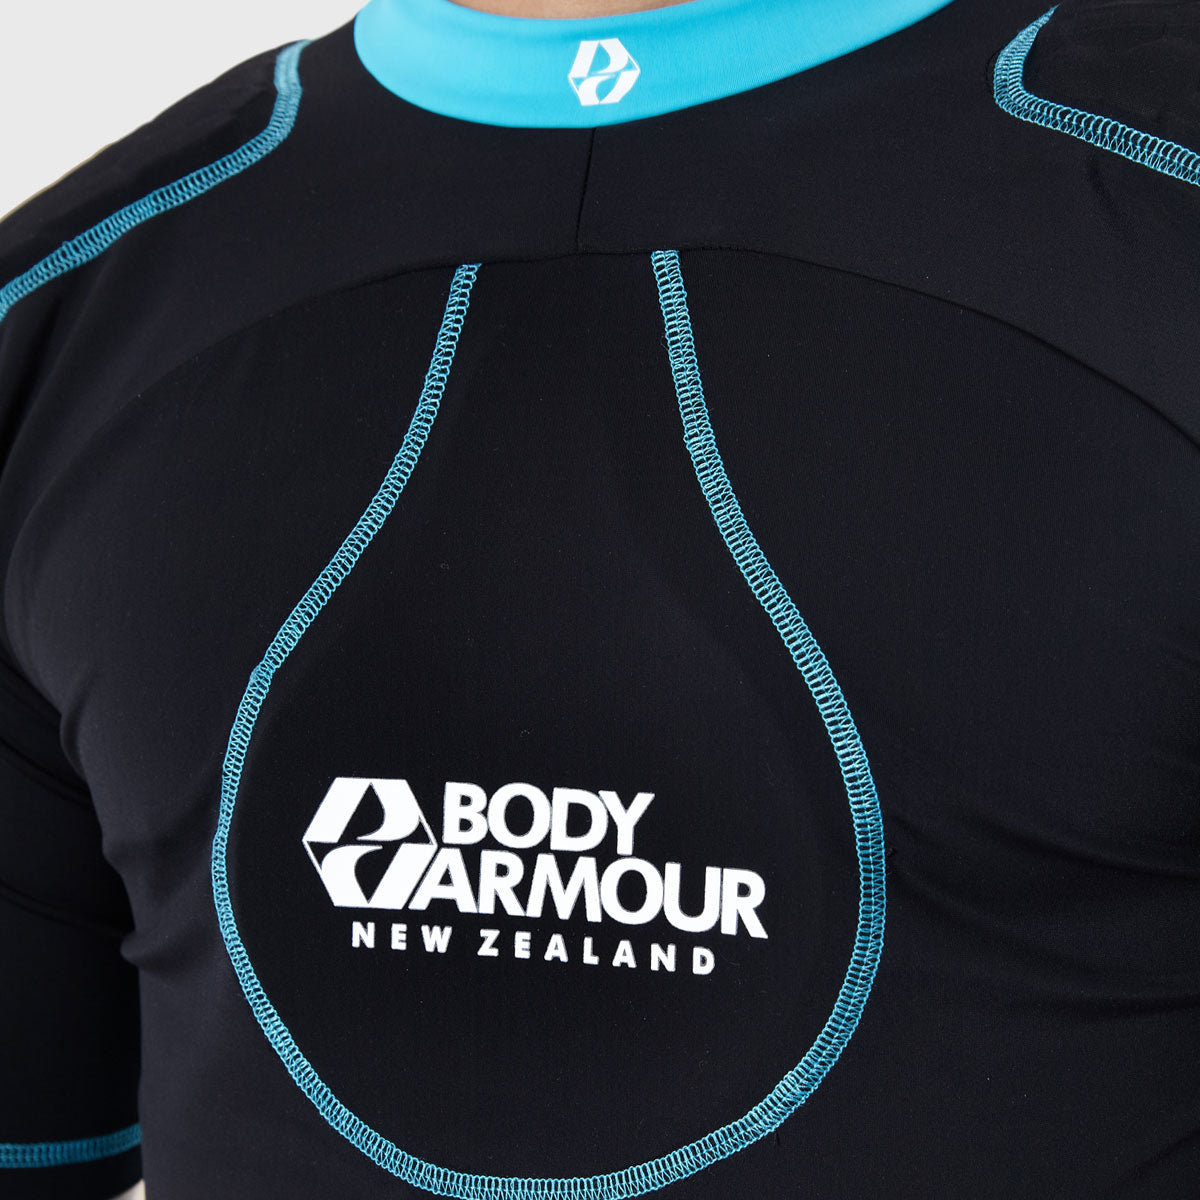 Kid's Flexitop Rugby Shoulder Pads - First XV rugbystuff.com